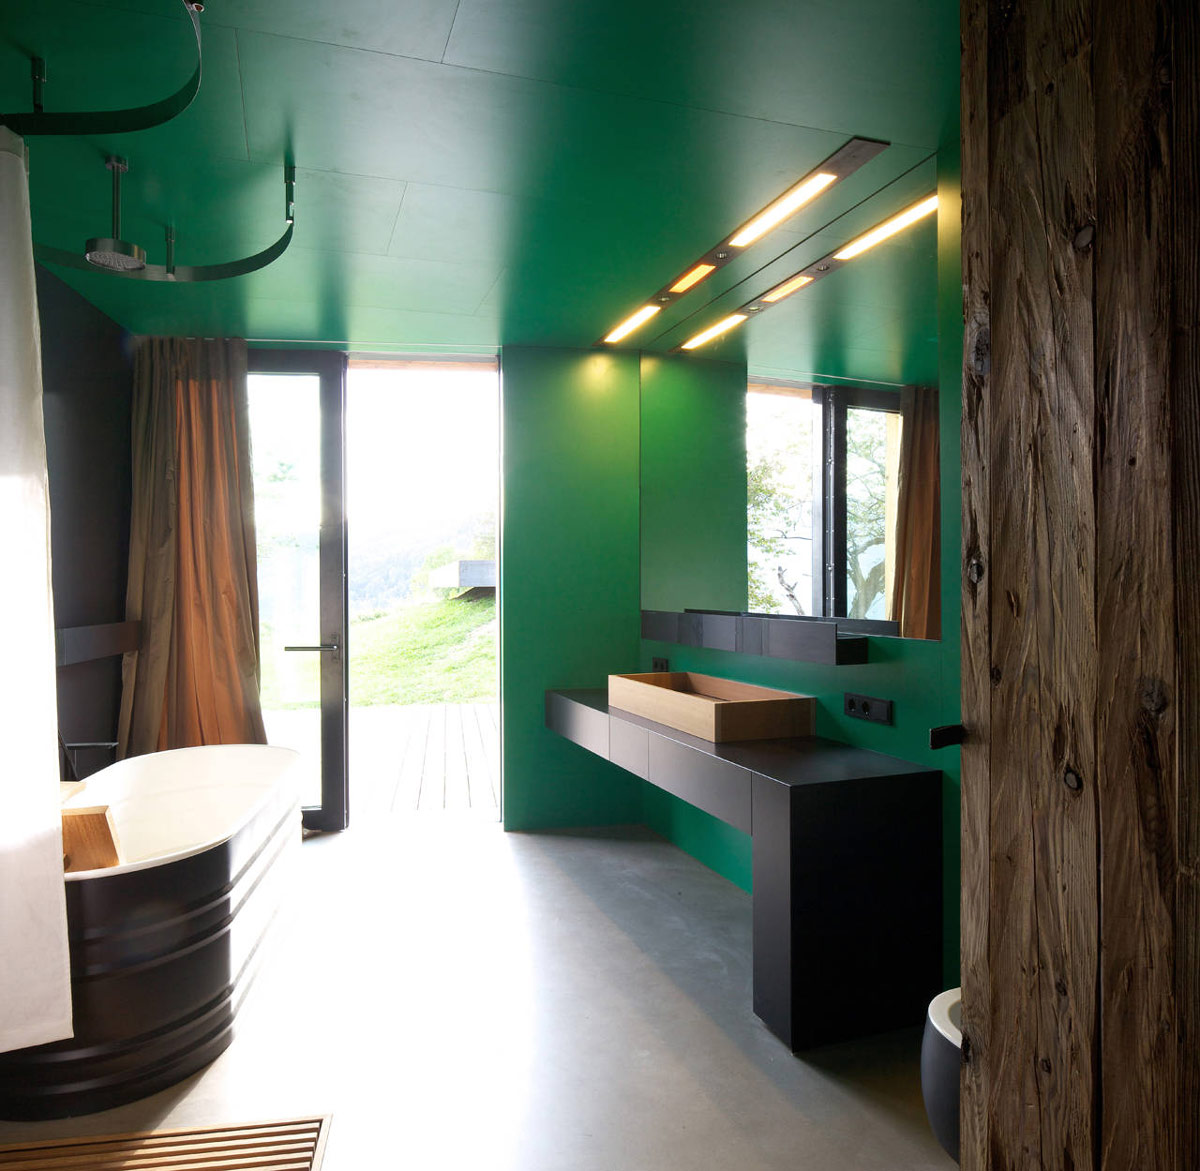 Bathroom, Green Walls, Bath, Kurt Brunner Residence in Sterzing, Italy